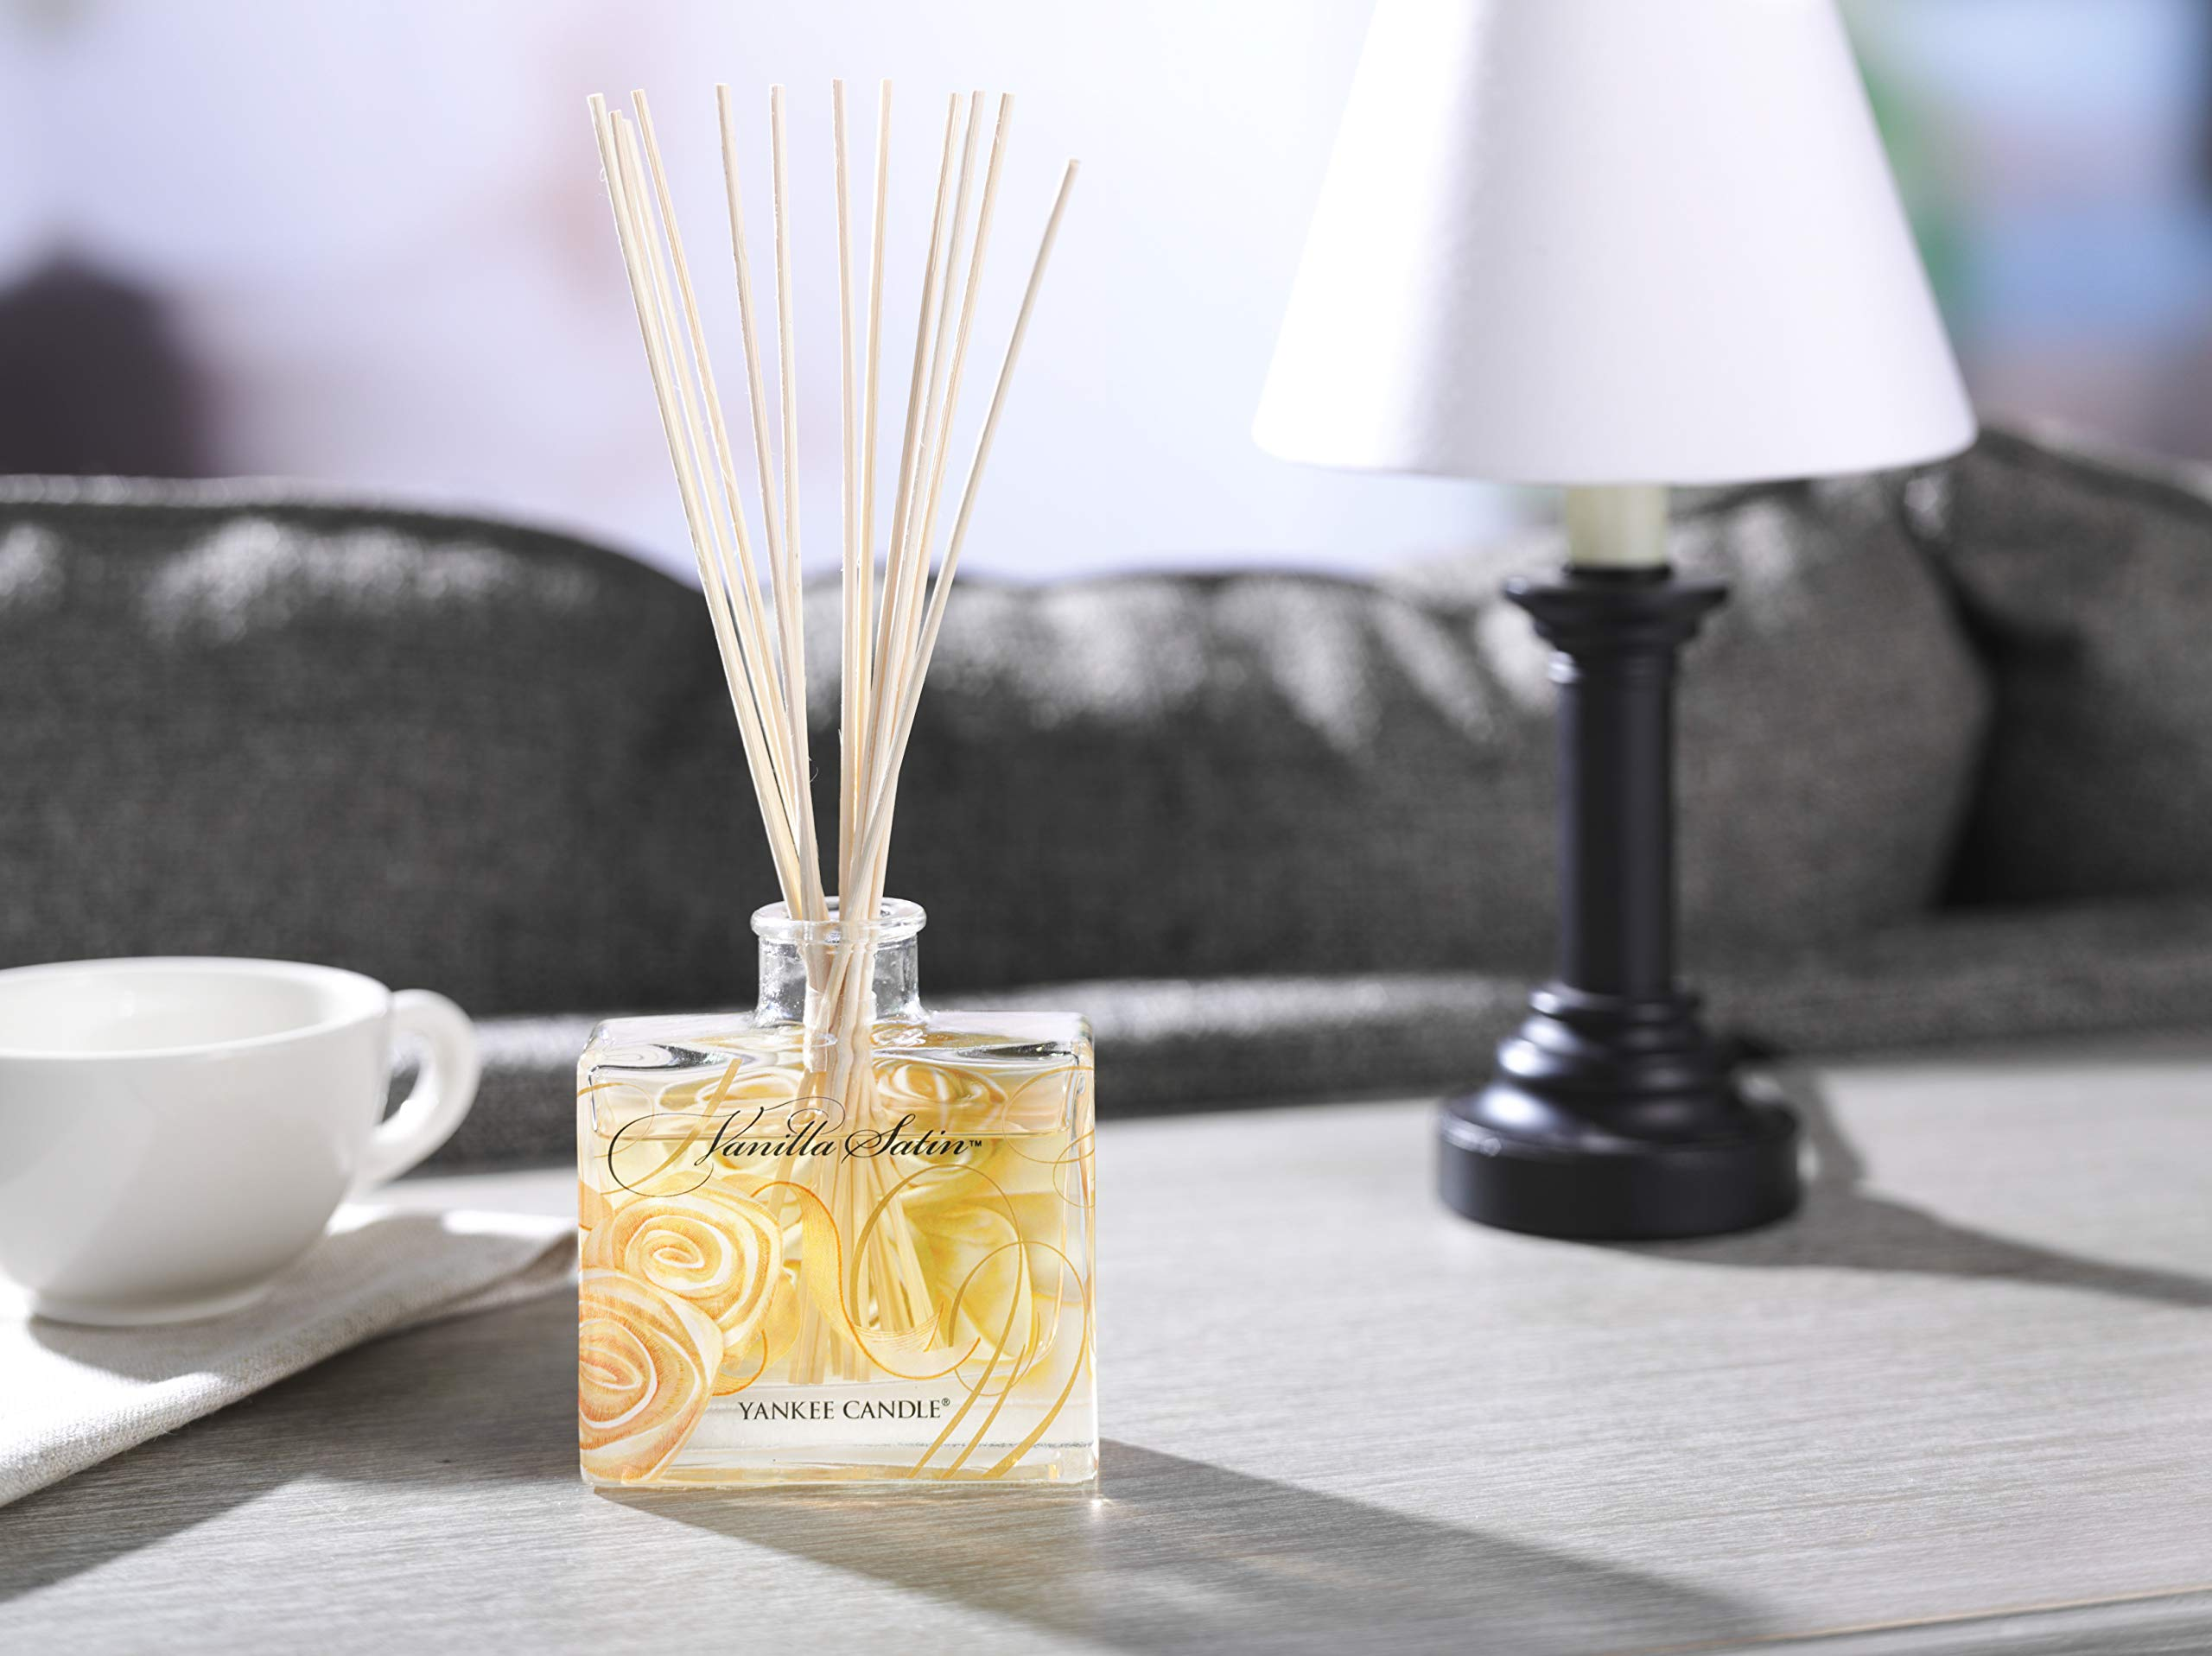 Yankee Candle ''Vanilla Satin Signature Reed Diffuser, White by Yankee Candle (Image #3)